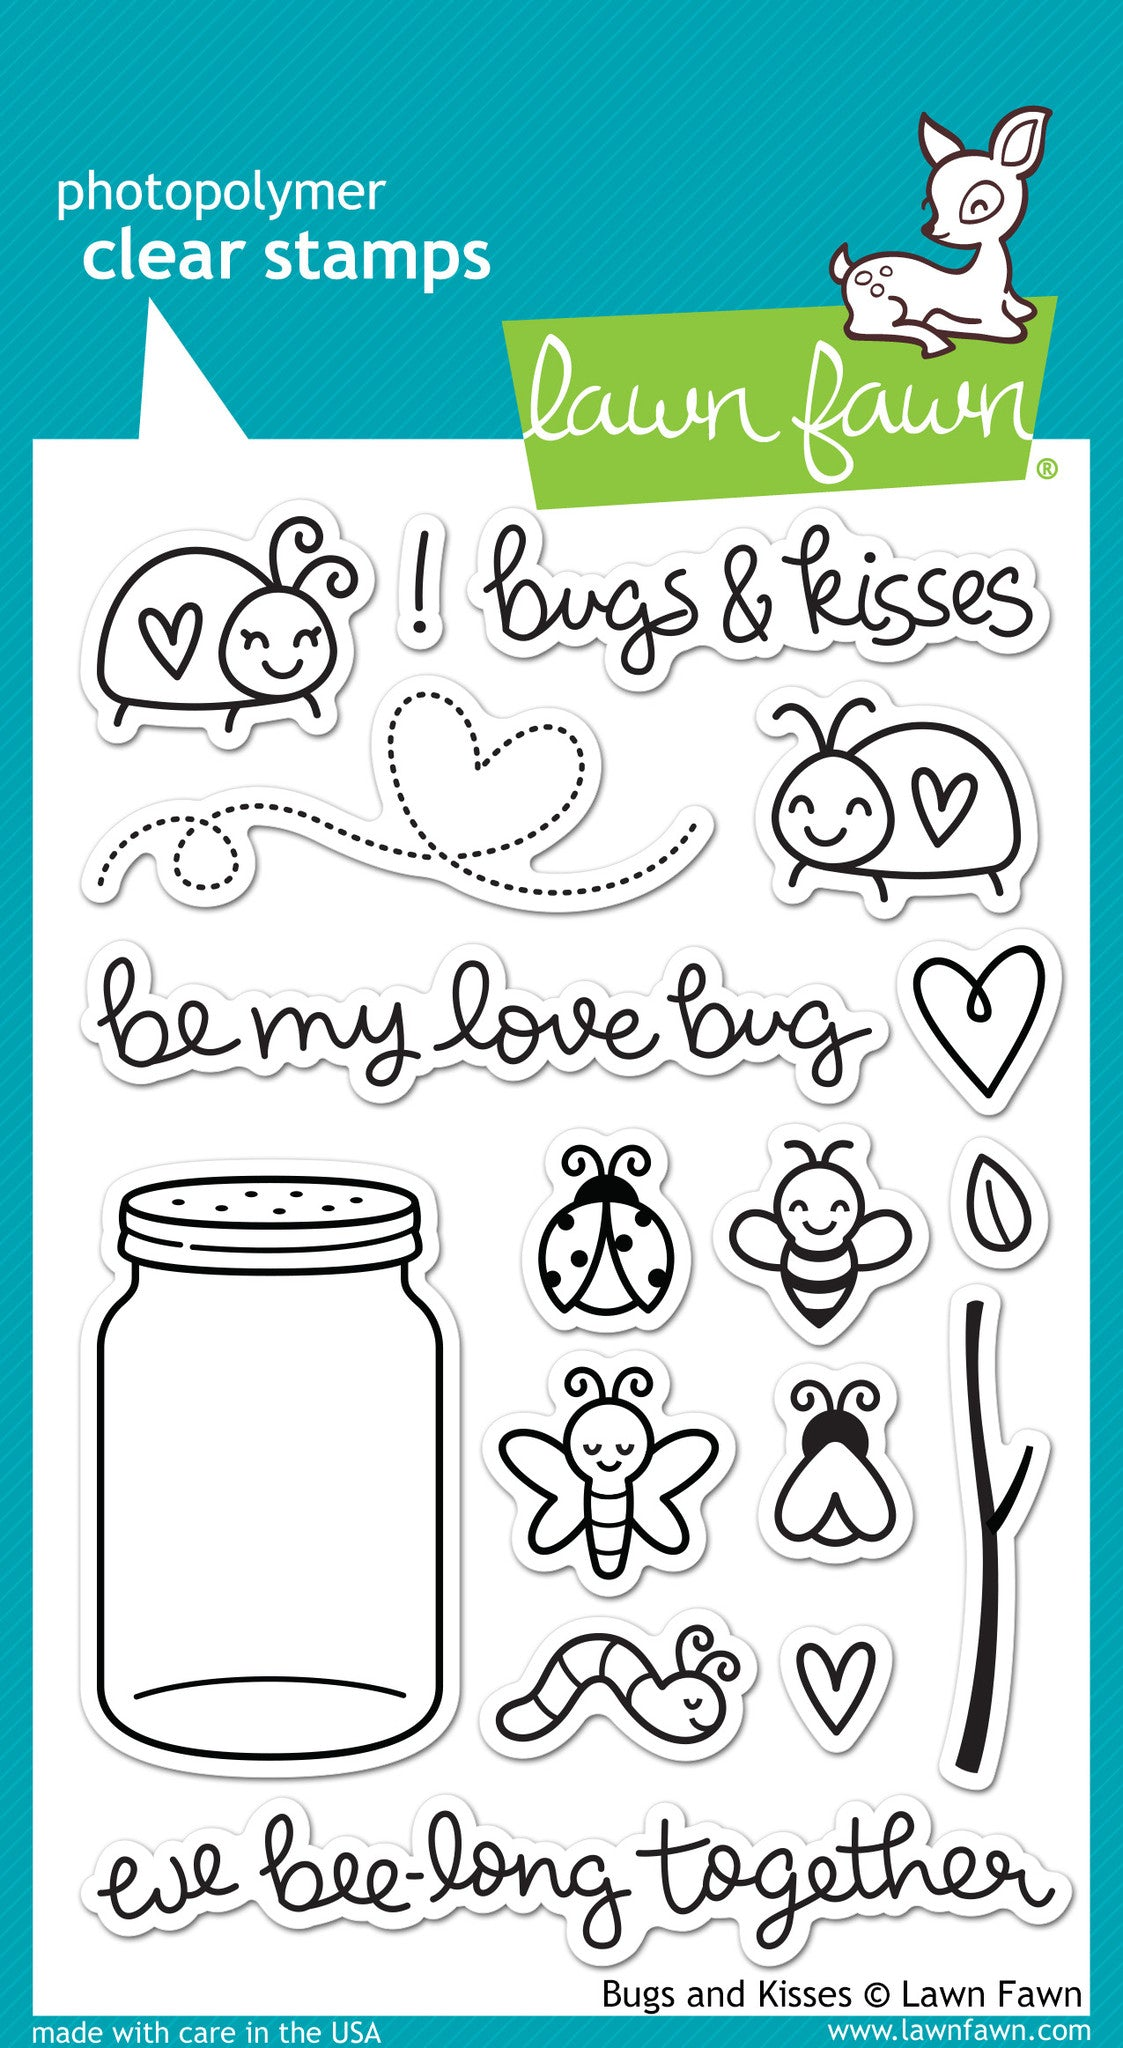 Yeti Promo Code >> bugs and kisses | Lawn Fawn